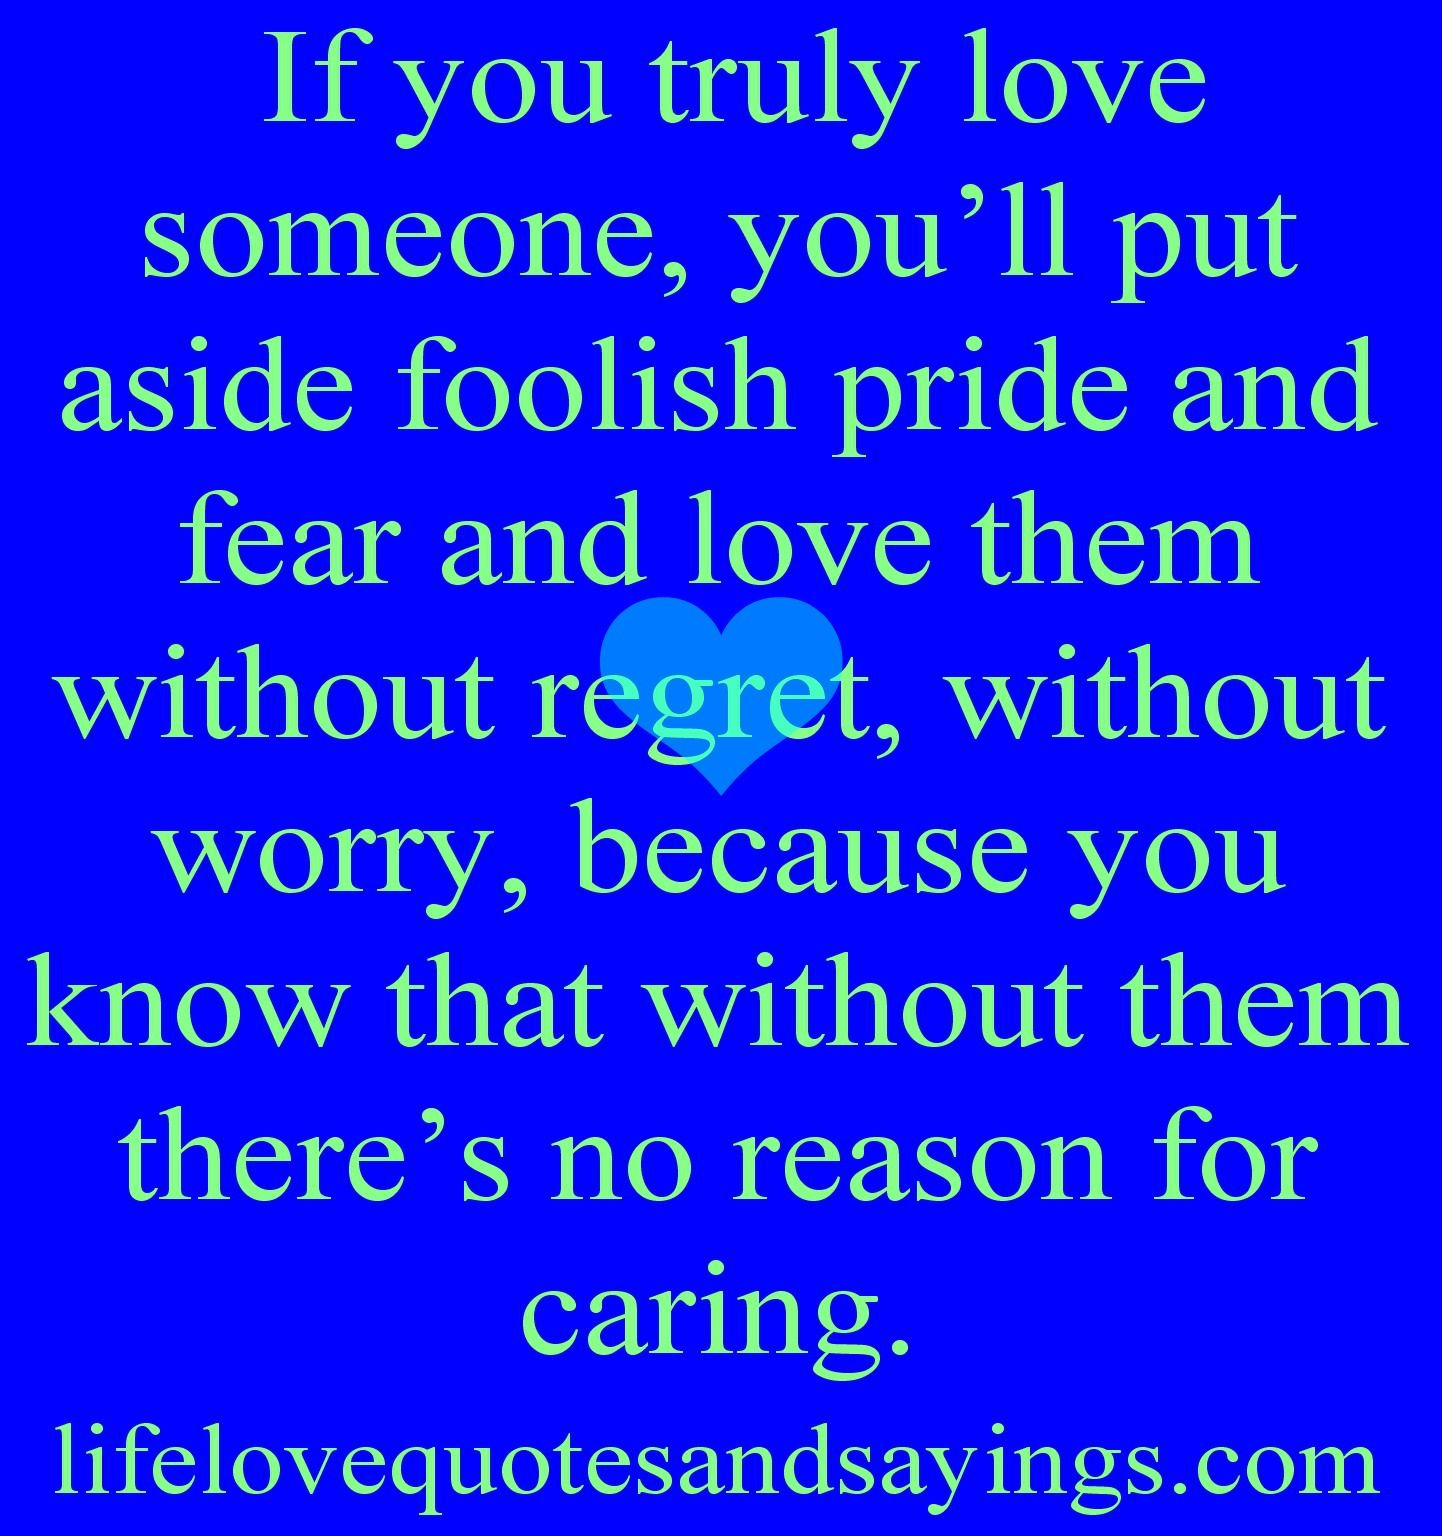 Truly Love Quotes If You Truly Love Someone You'll Put Aside Foolish Pride And Fear